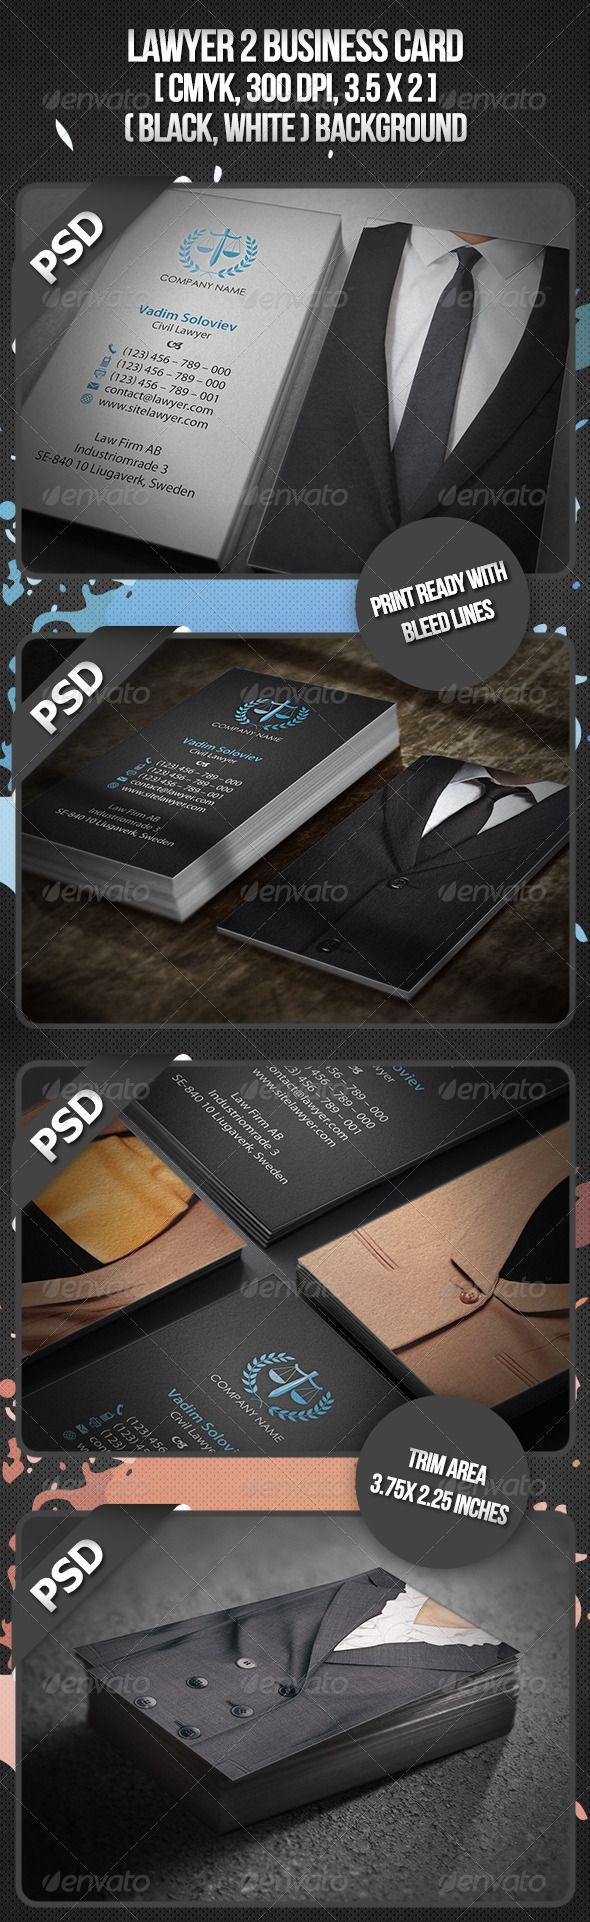 Lawyer 2 Business Card | Print templates, Business cards and Card ...